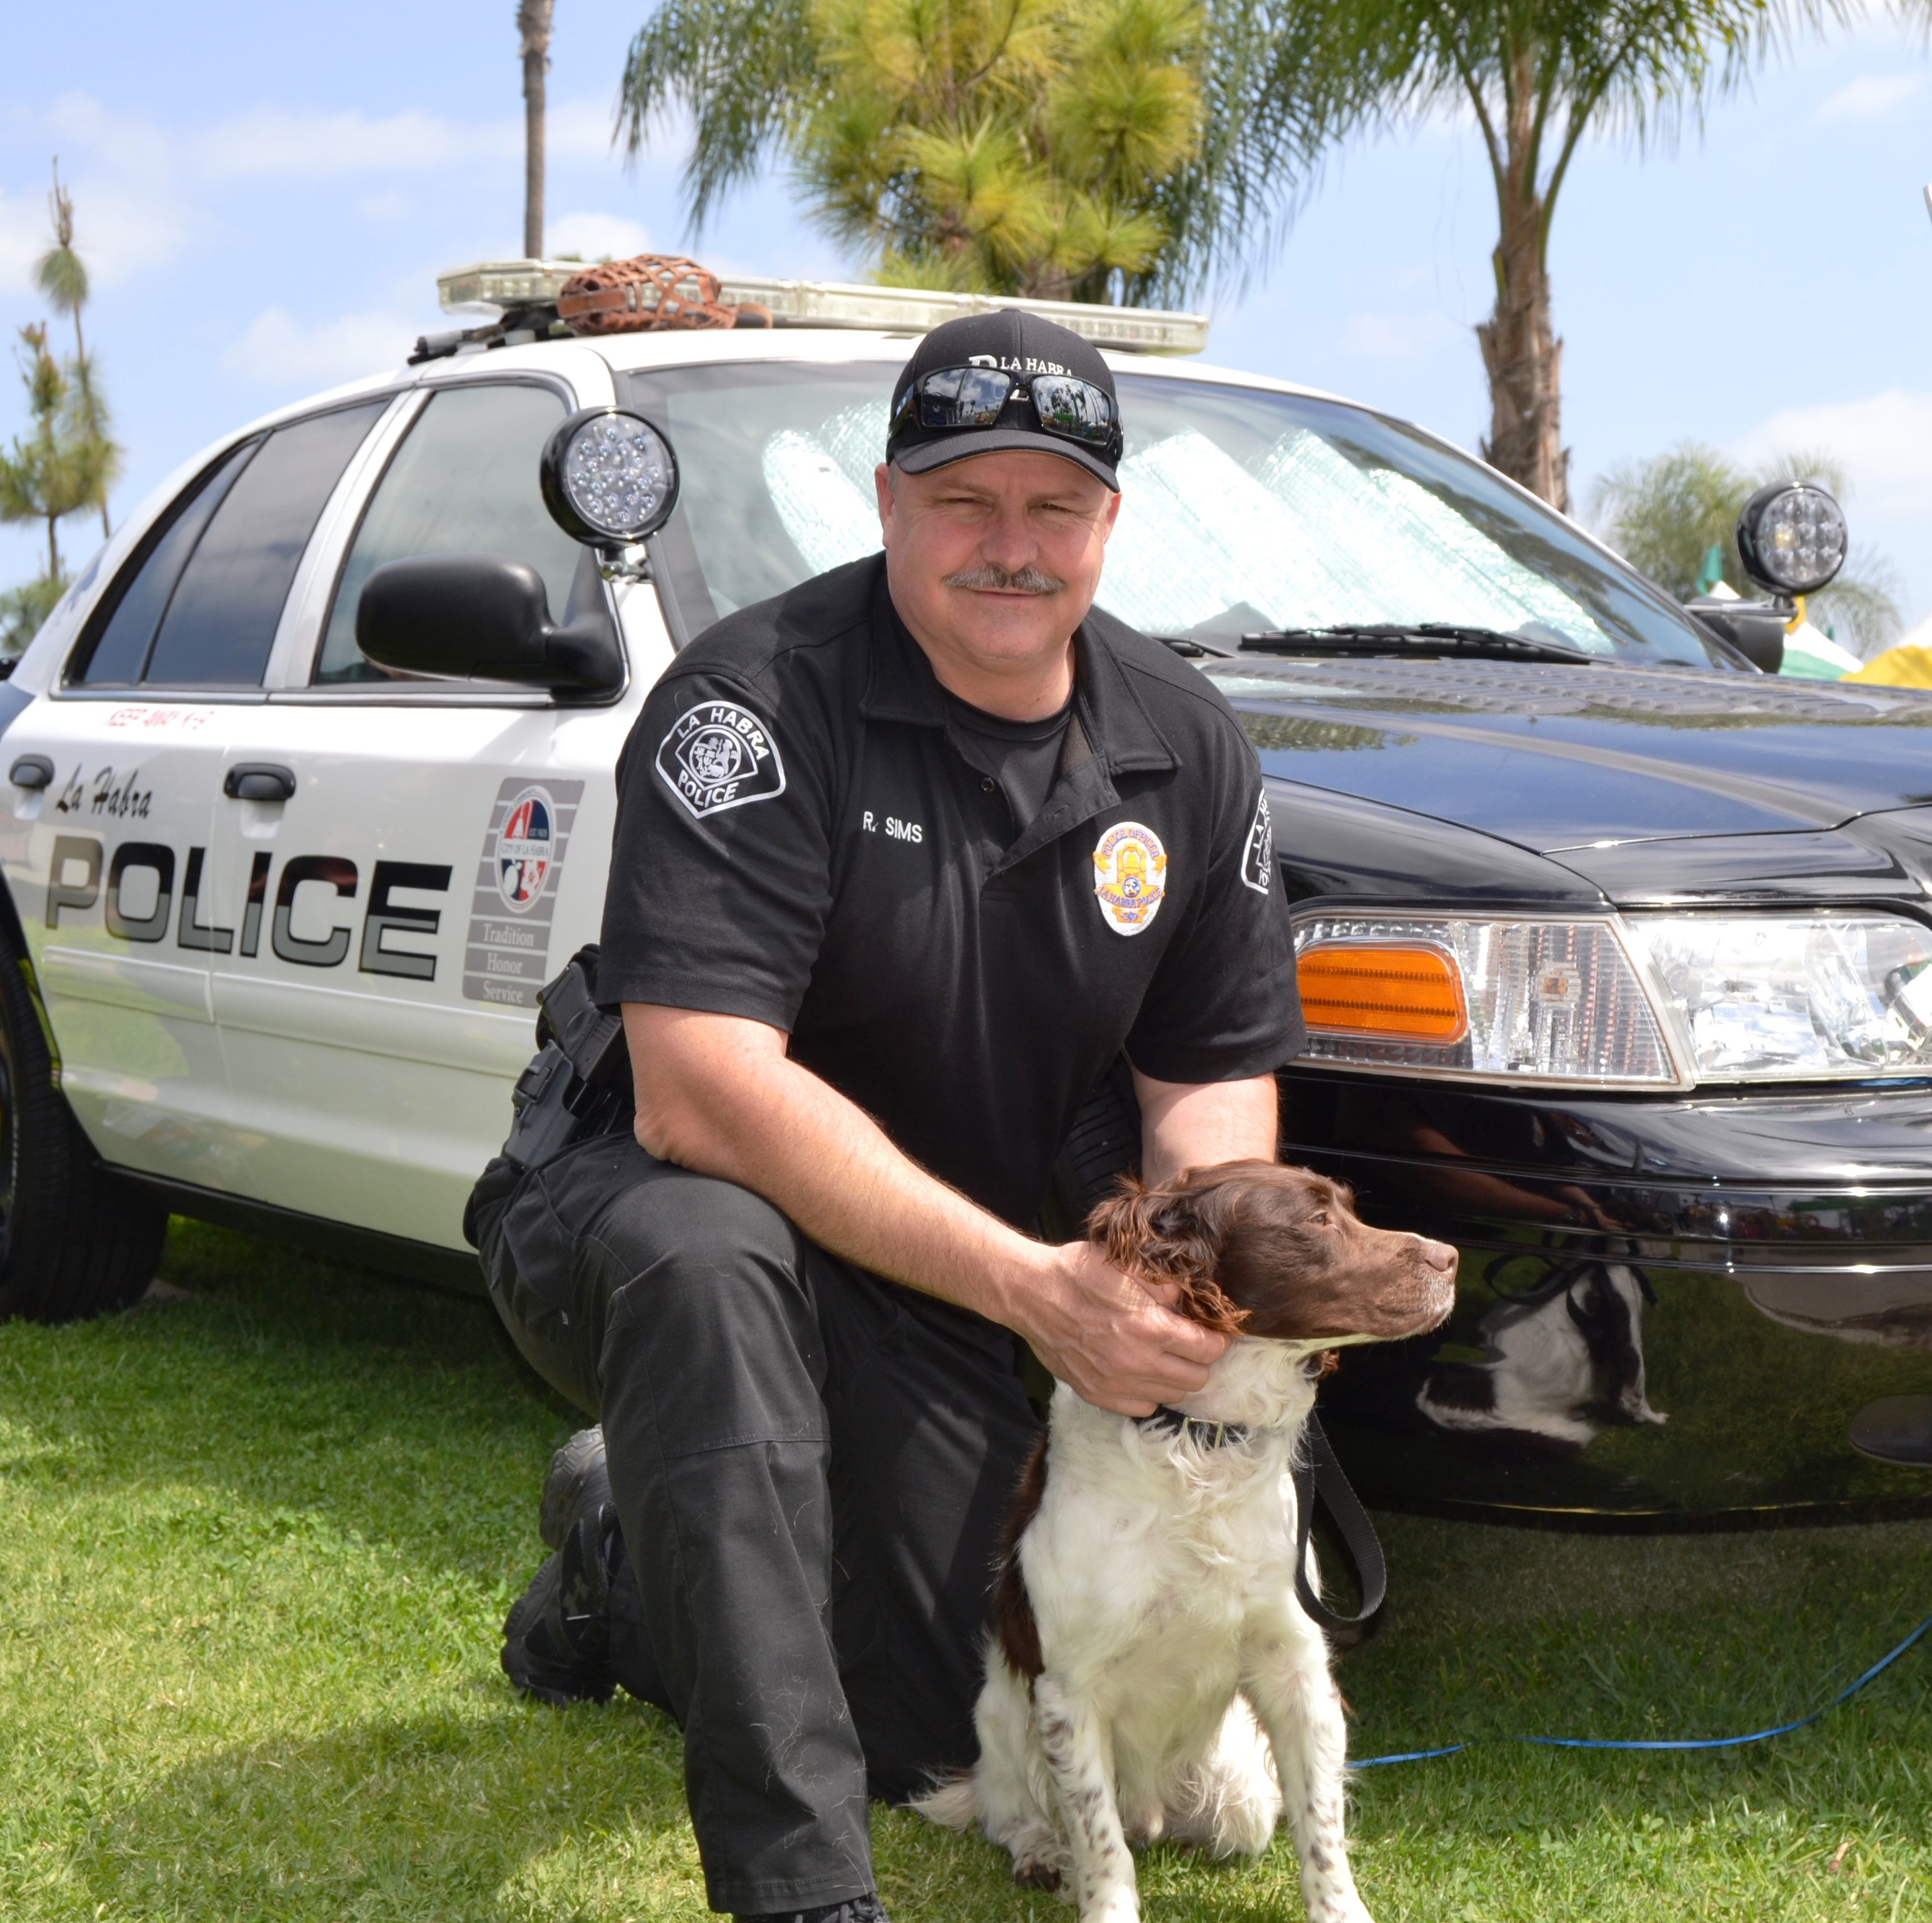 K9 Officer with Dog and police car